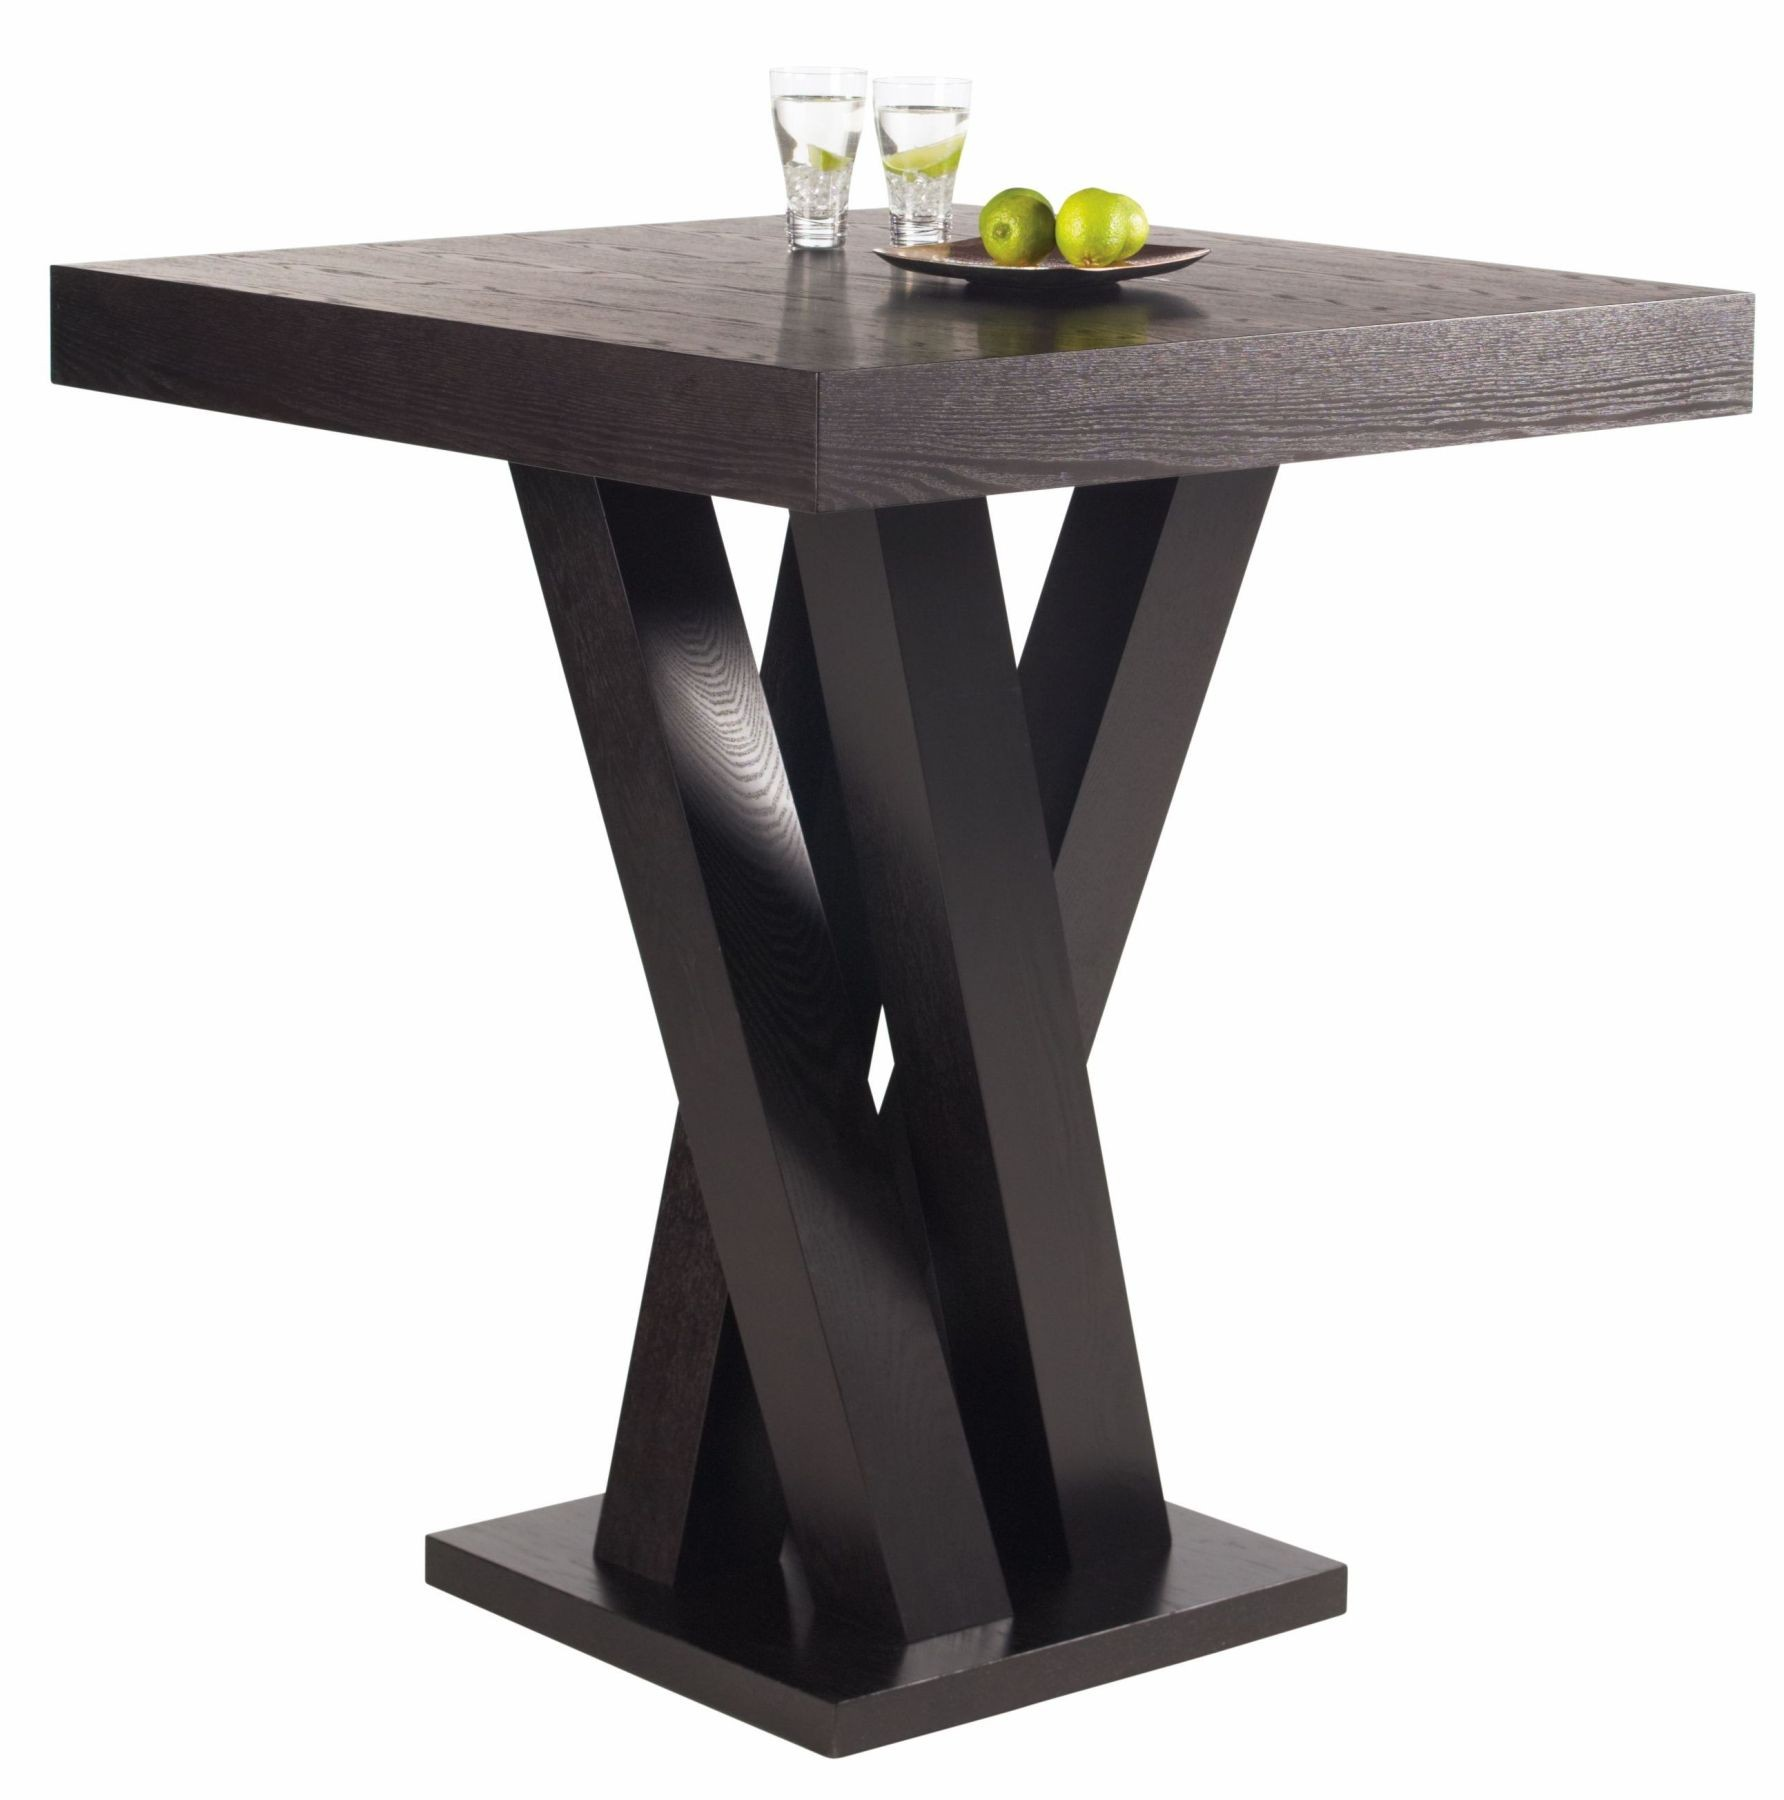 madero bar table from sunpan 39872 coleman furniture. Black Bedroom Furniture Sets. Home Design Ideas